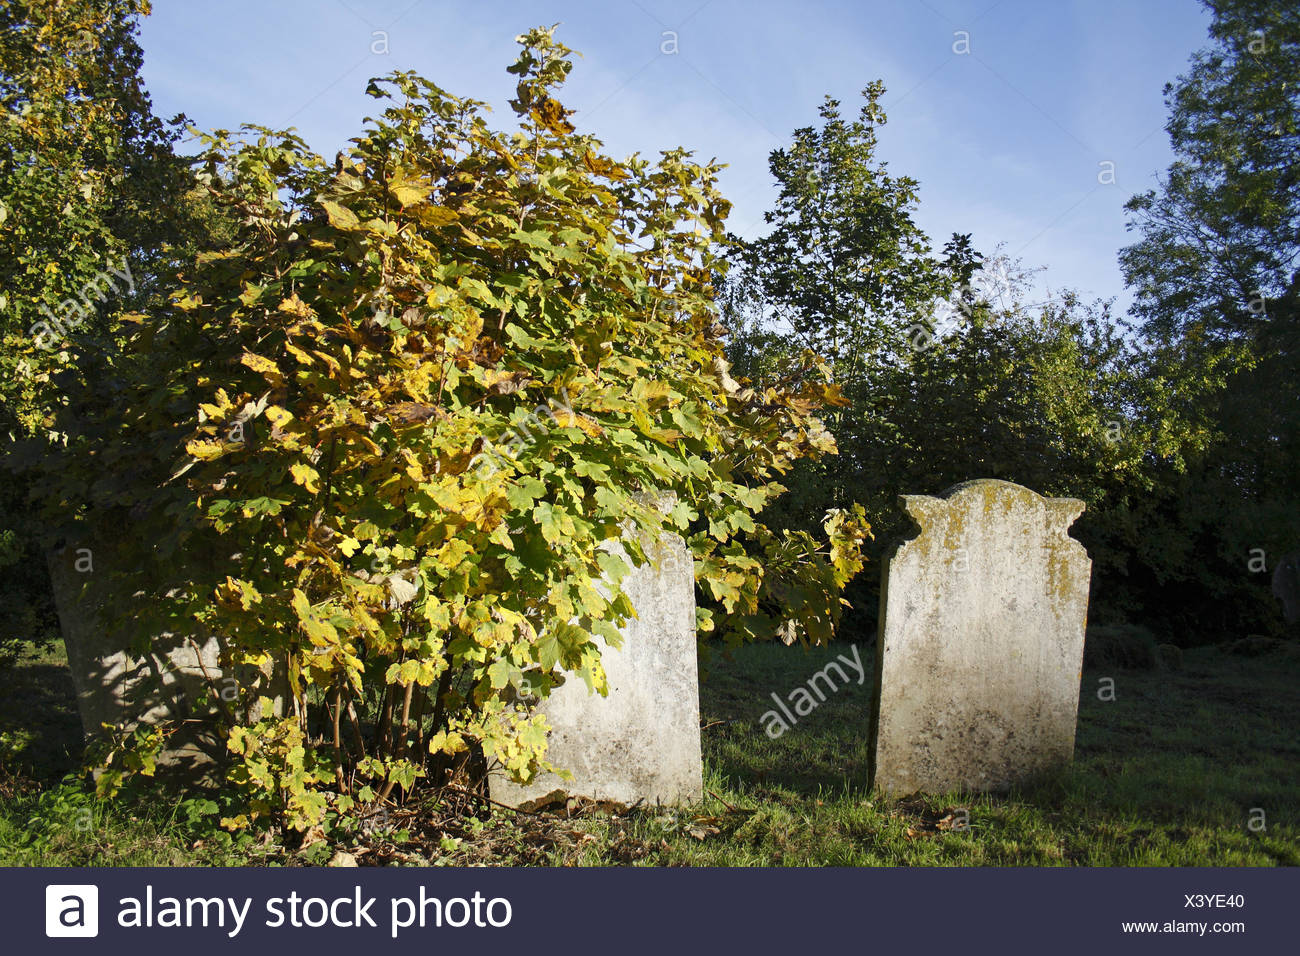 Sycamore (Acer pseudoplatanus) sapling, growing beside headstones in church graveyard, St. Andrew's Church, Wickham Skeith, Suff - Stock Image